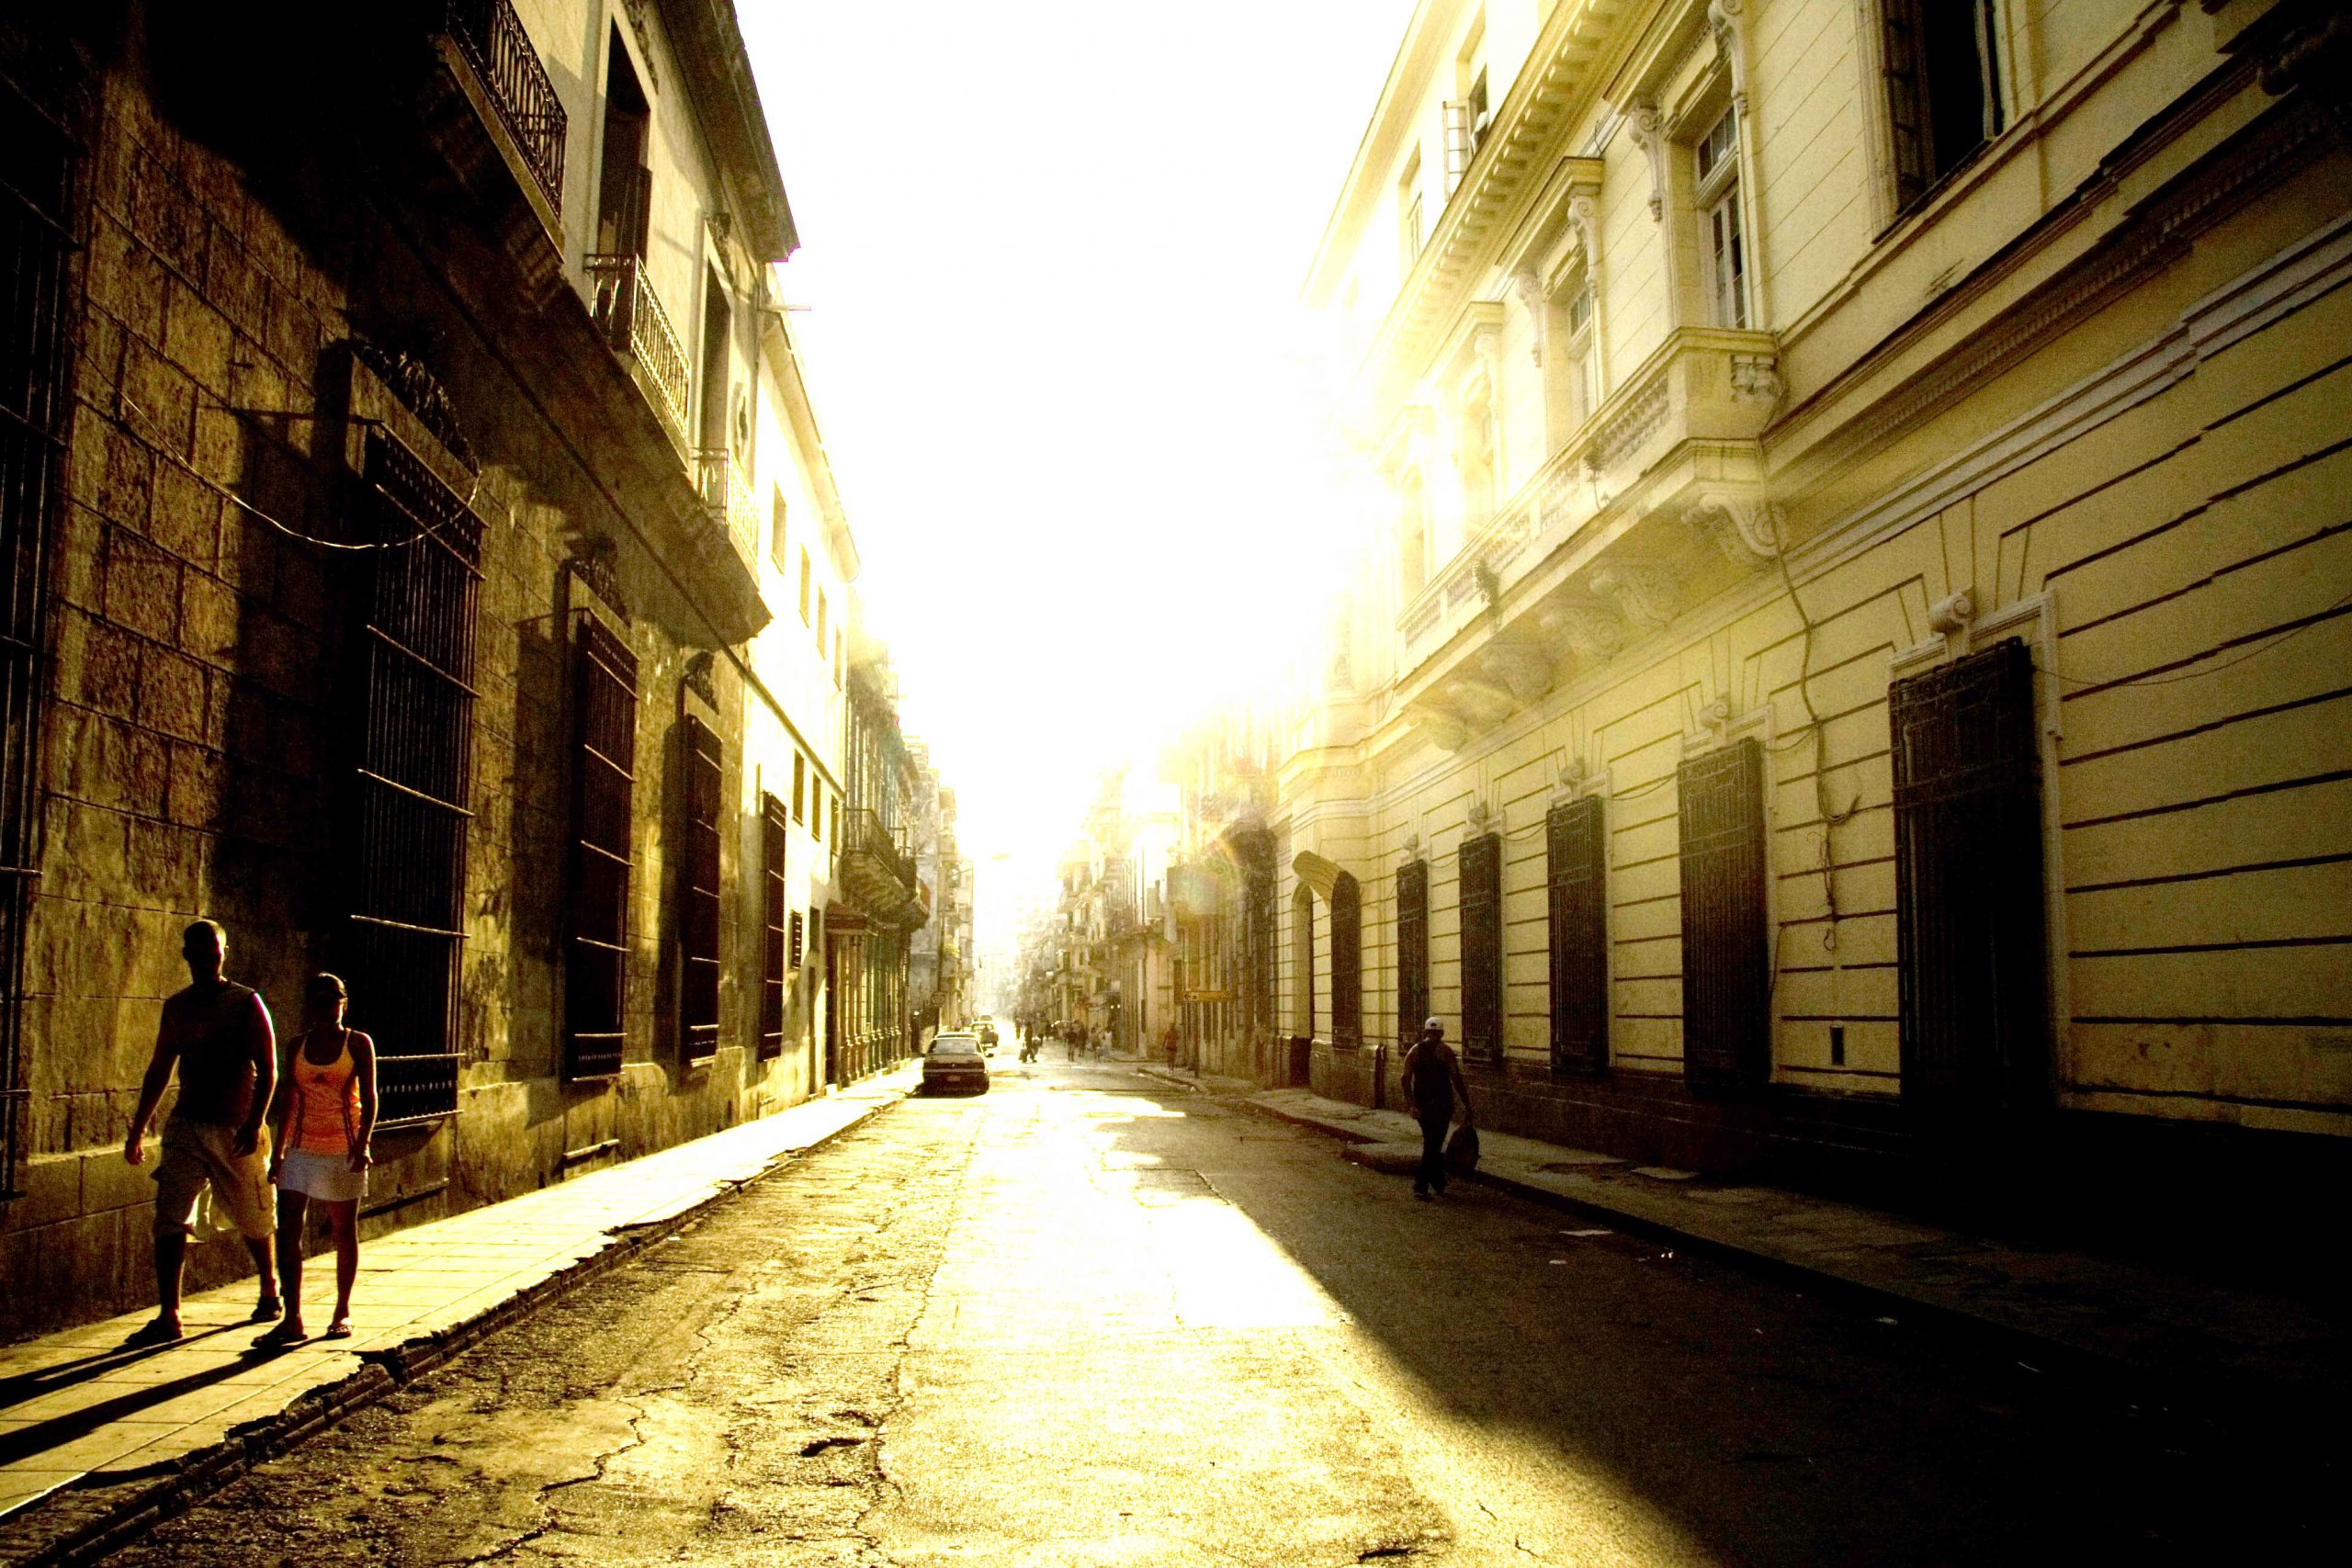 the streets of Havana during the sunrise